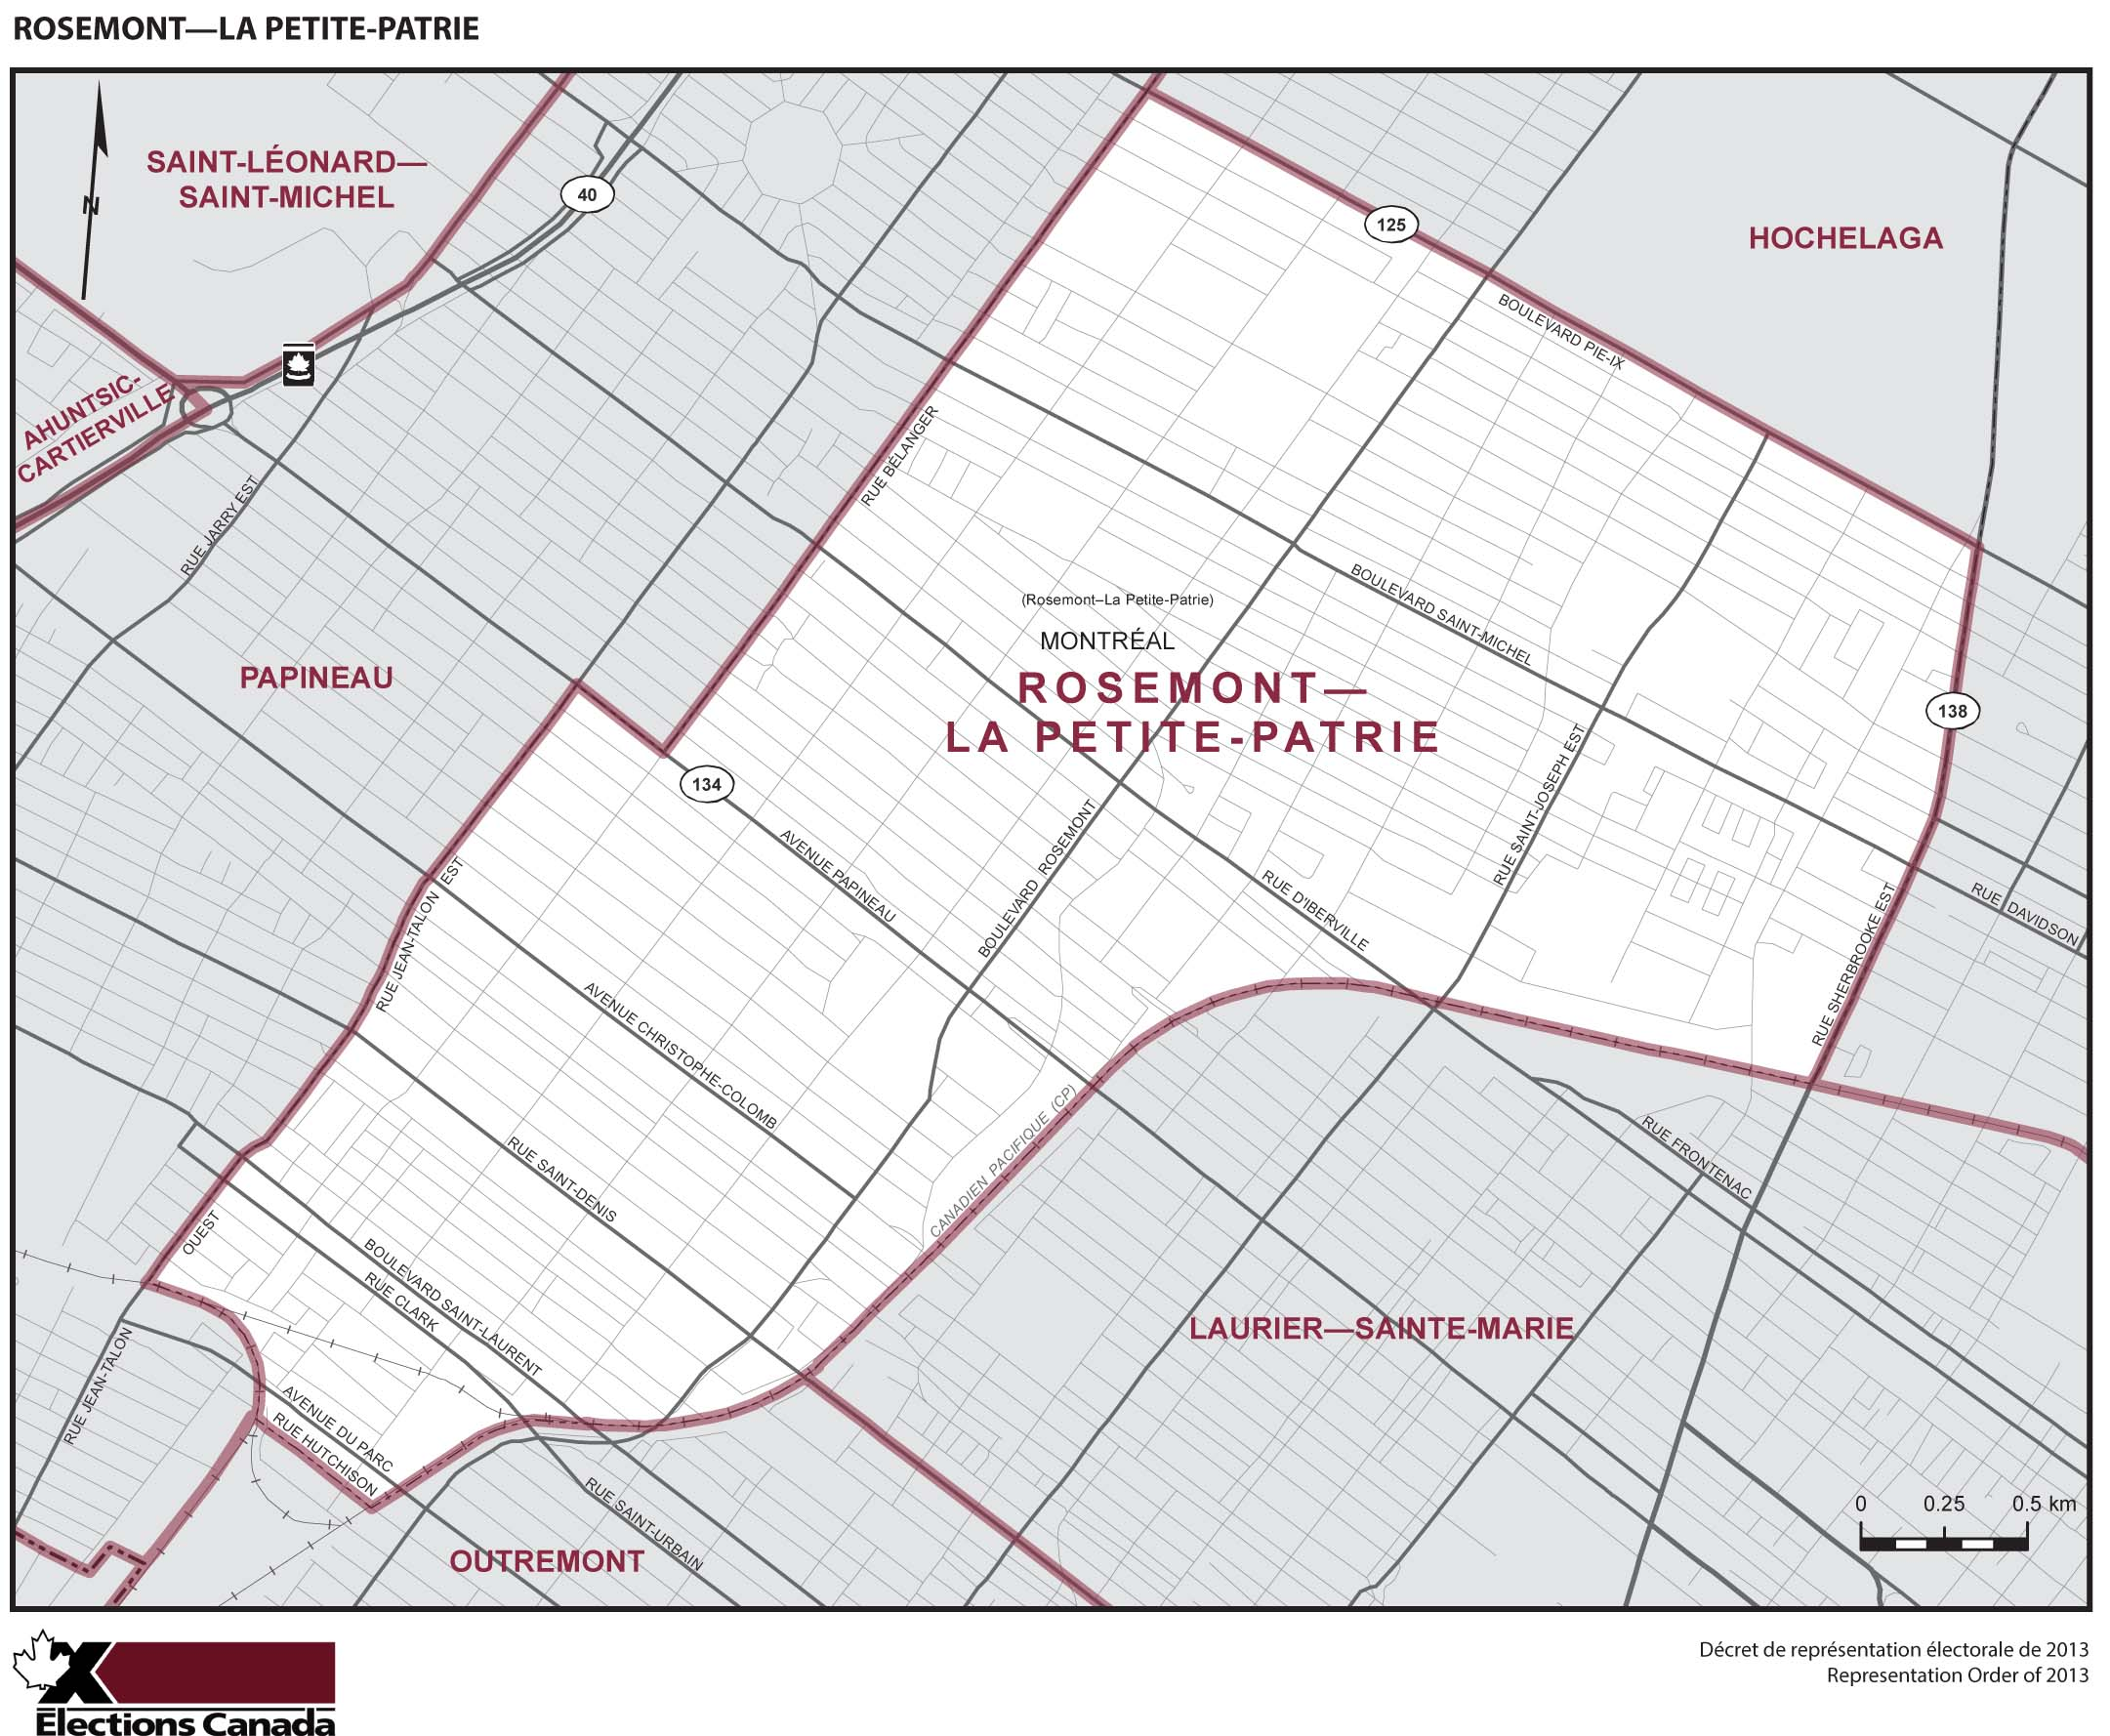 Map: Rosemont--La Petite-Patrie, Federal electoral district, 2013 Representation Order (in white), Quebec